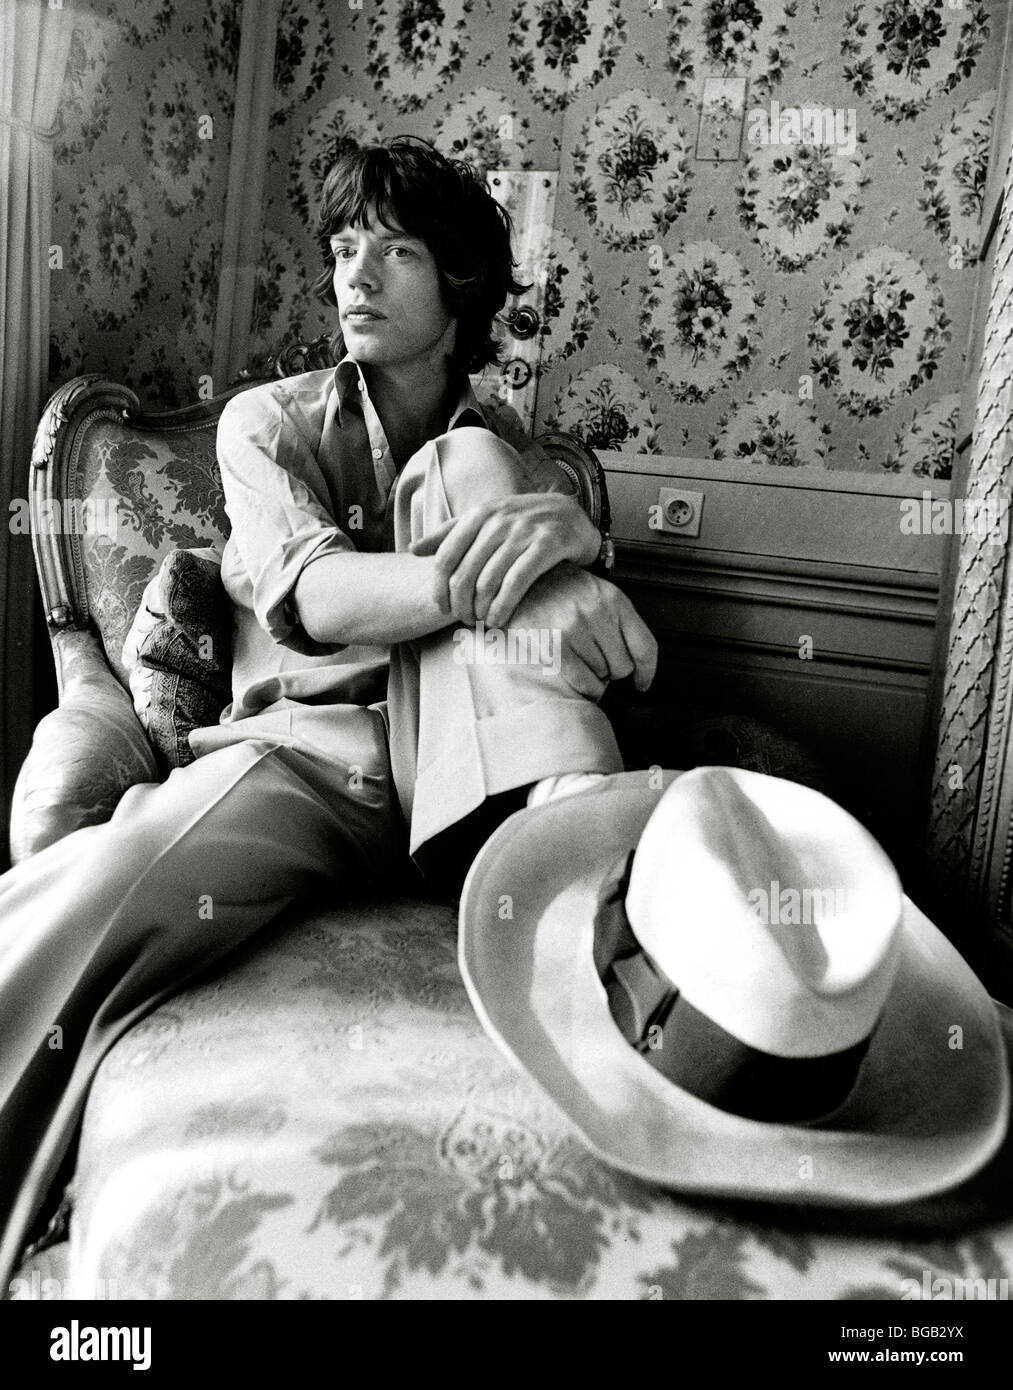 MICK JAGGER in his hotel bedroom on ROLLING STONES TOUR, VIENNA, AUSTRIA - 1973 Stock Photo